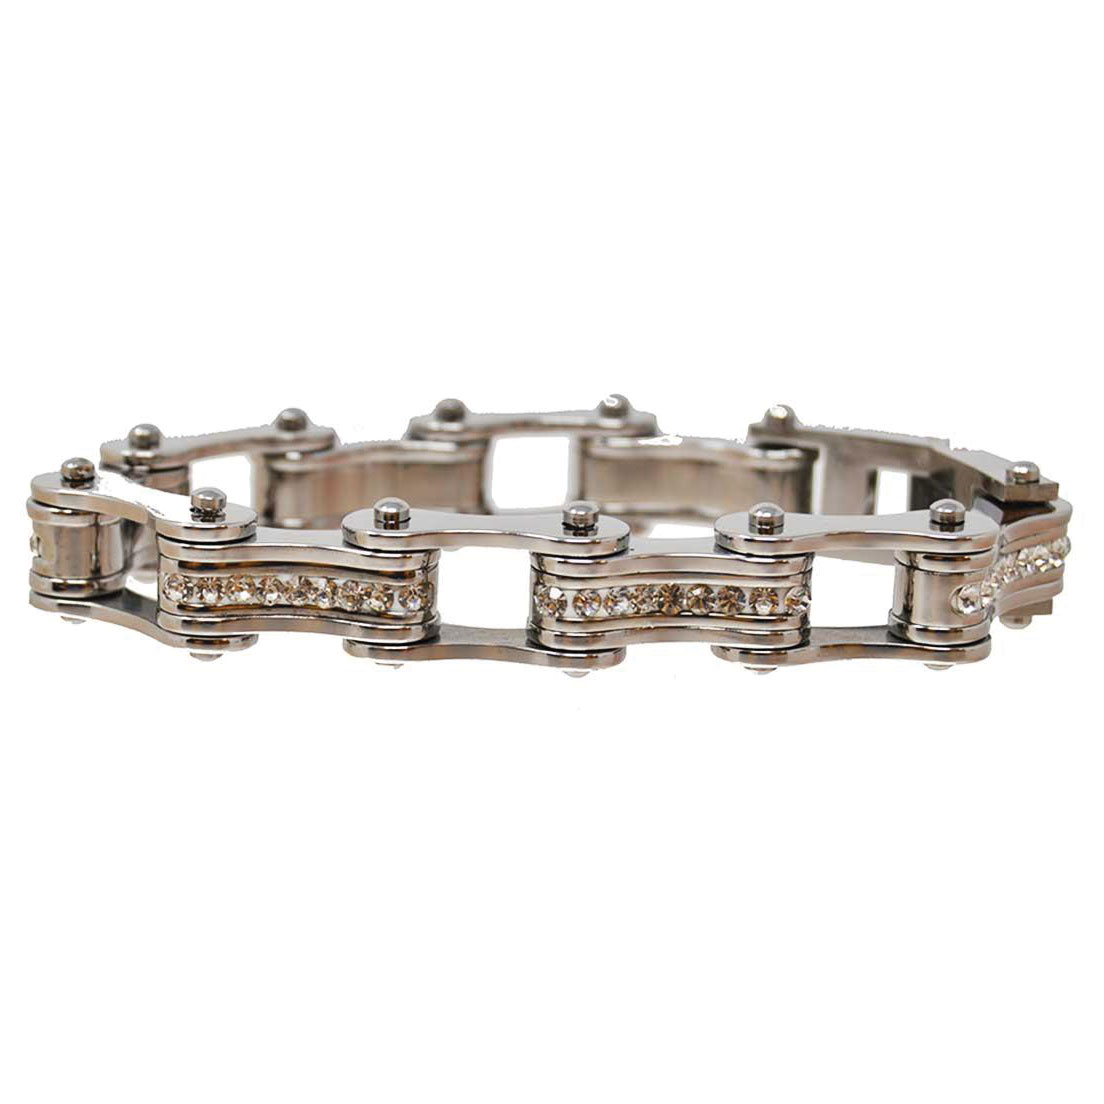 Vance Leathers Silver Bracelet with Crystal Links